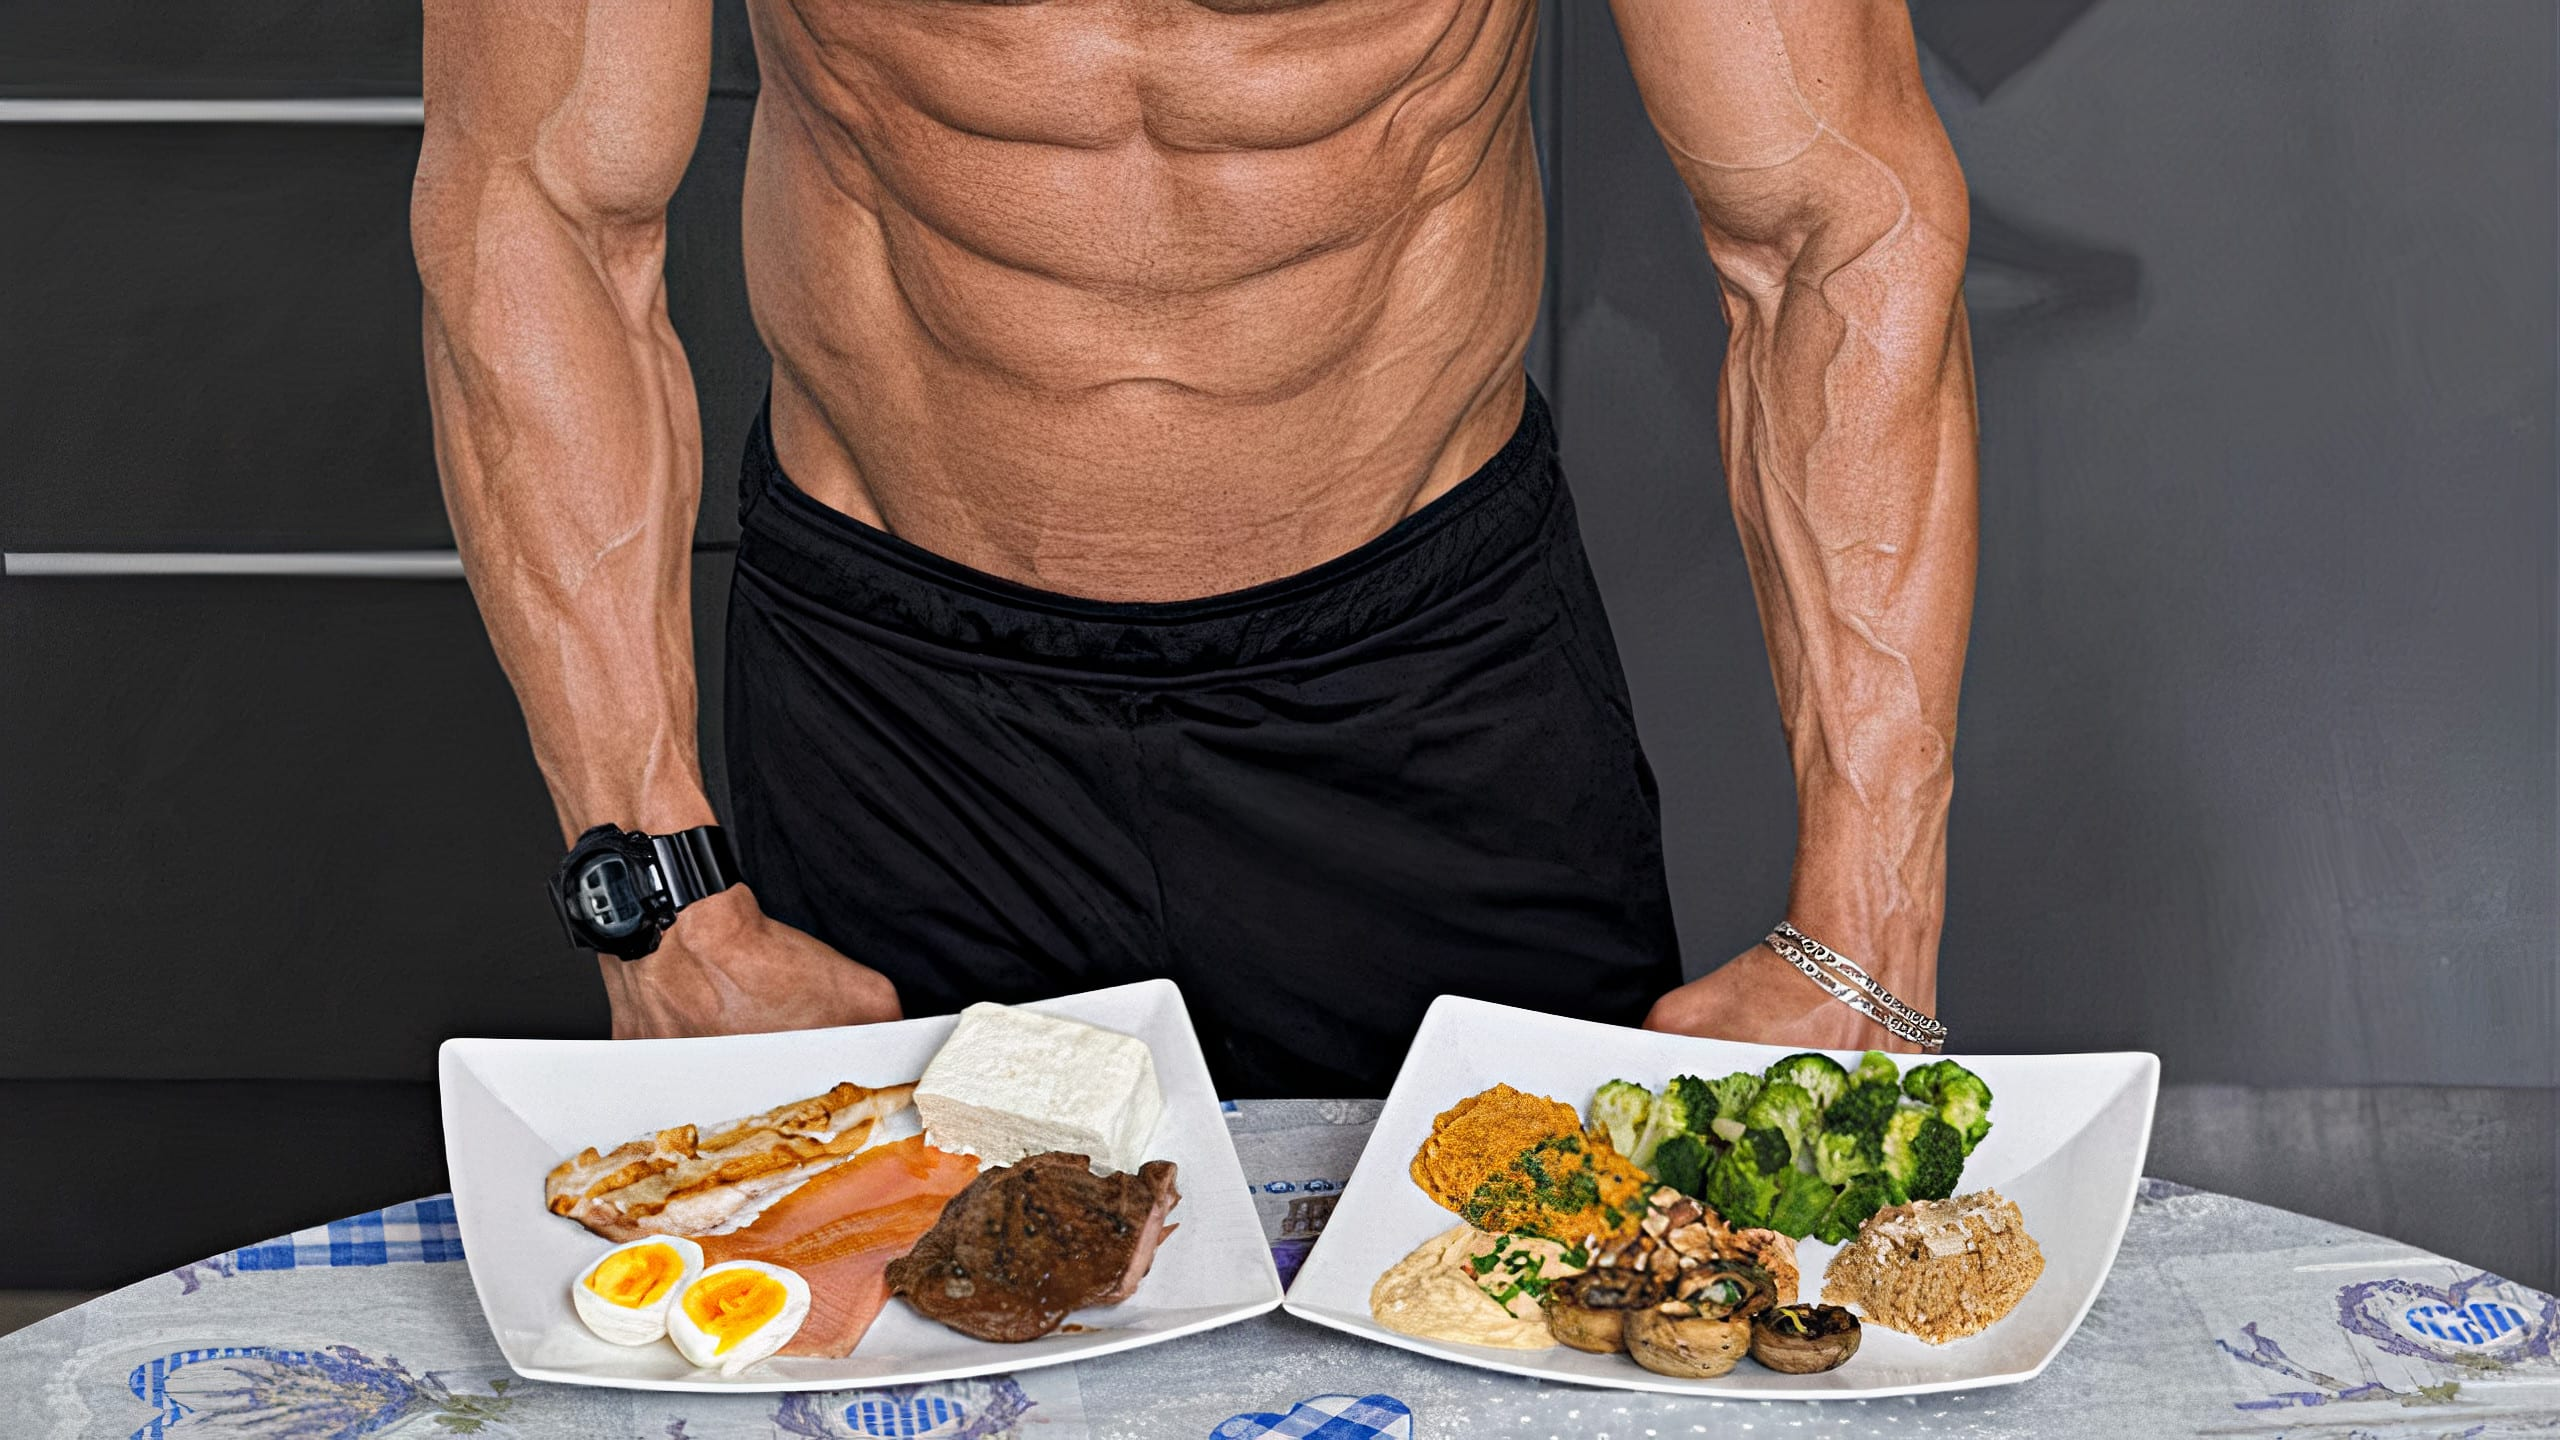 Bodybuilder Looking At Foods That Contain Natural Steroids